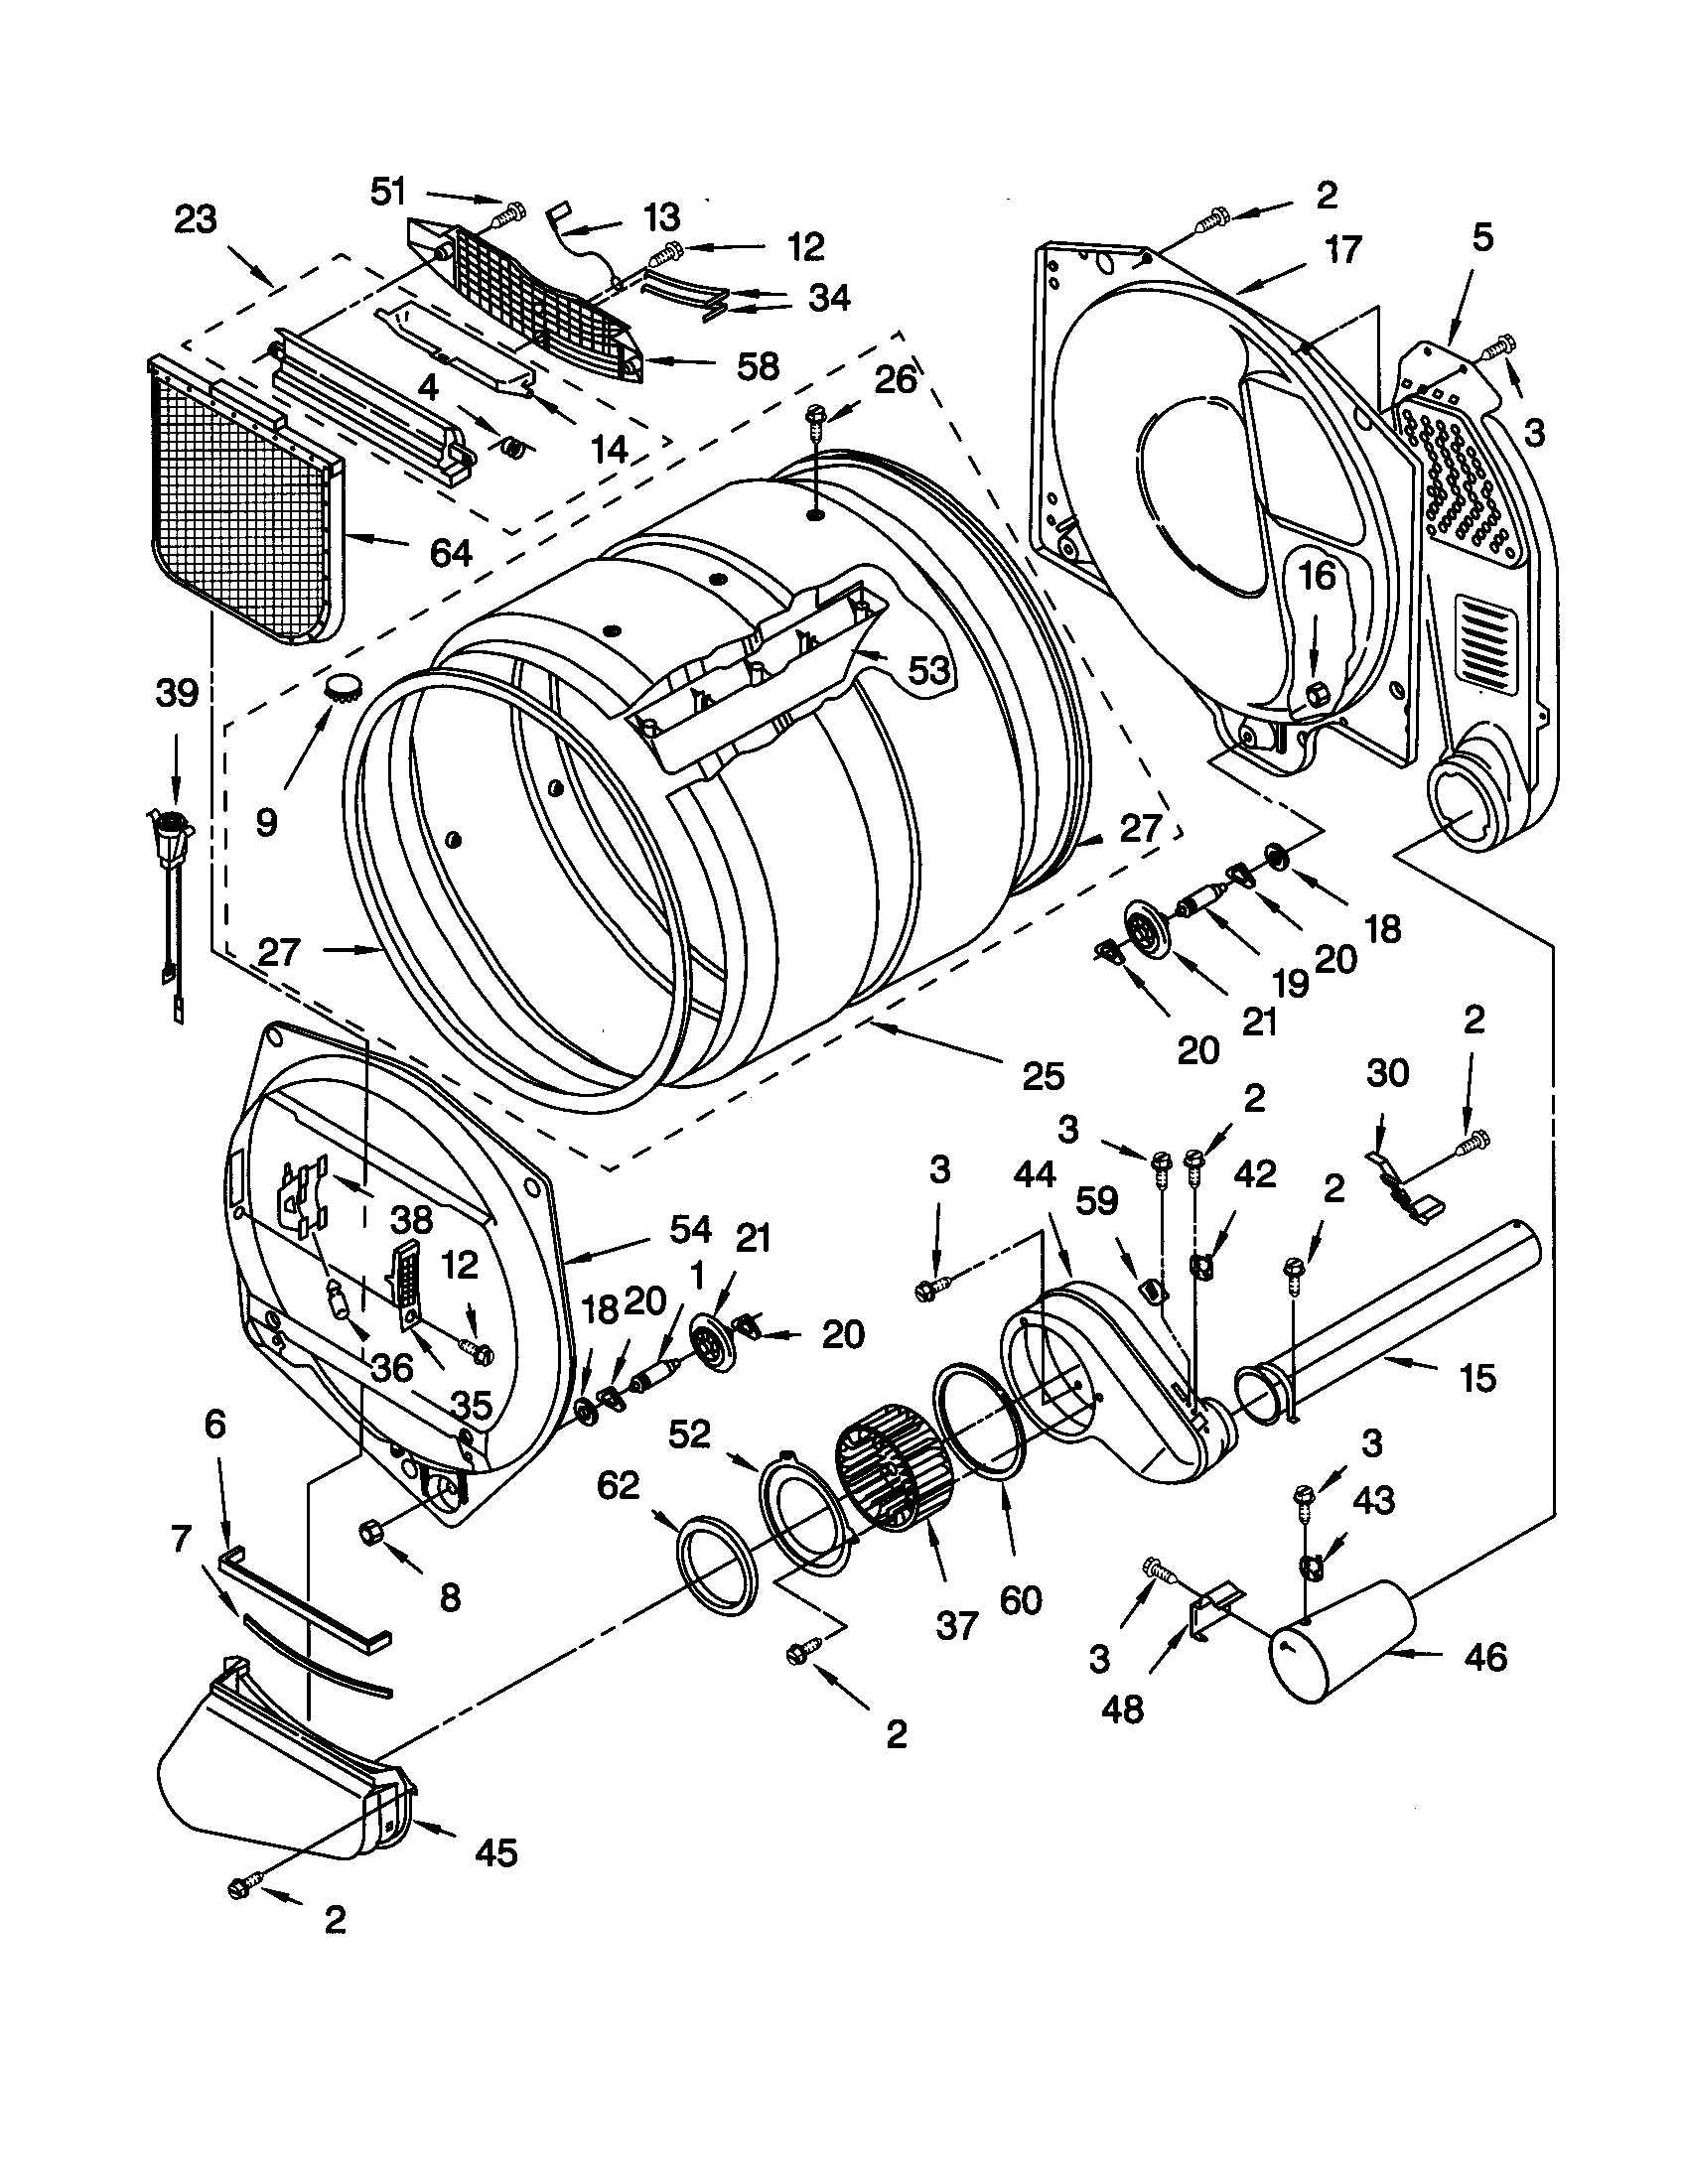 Kenmore Dryer Diagram